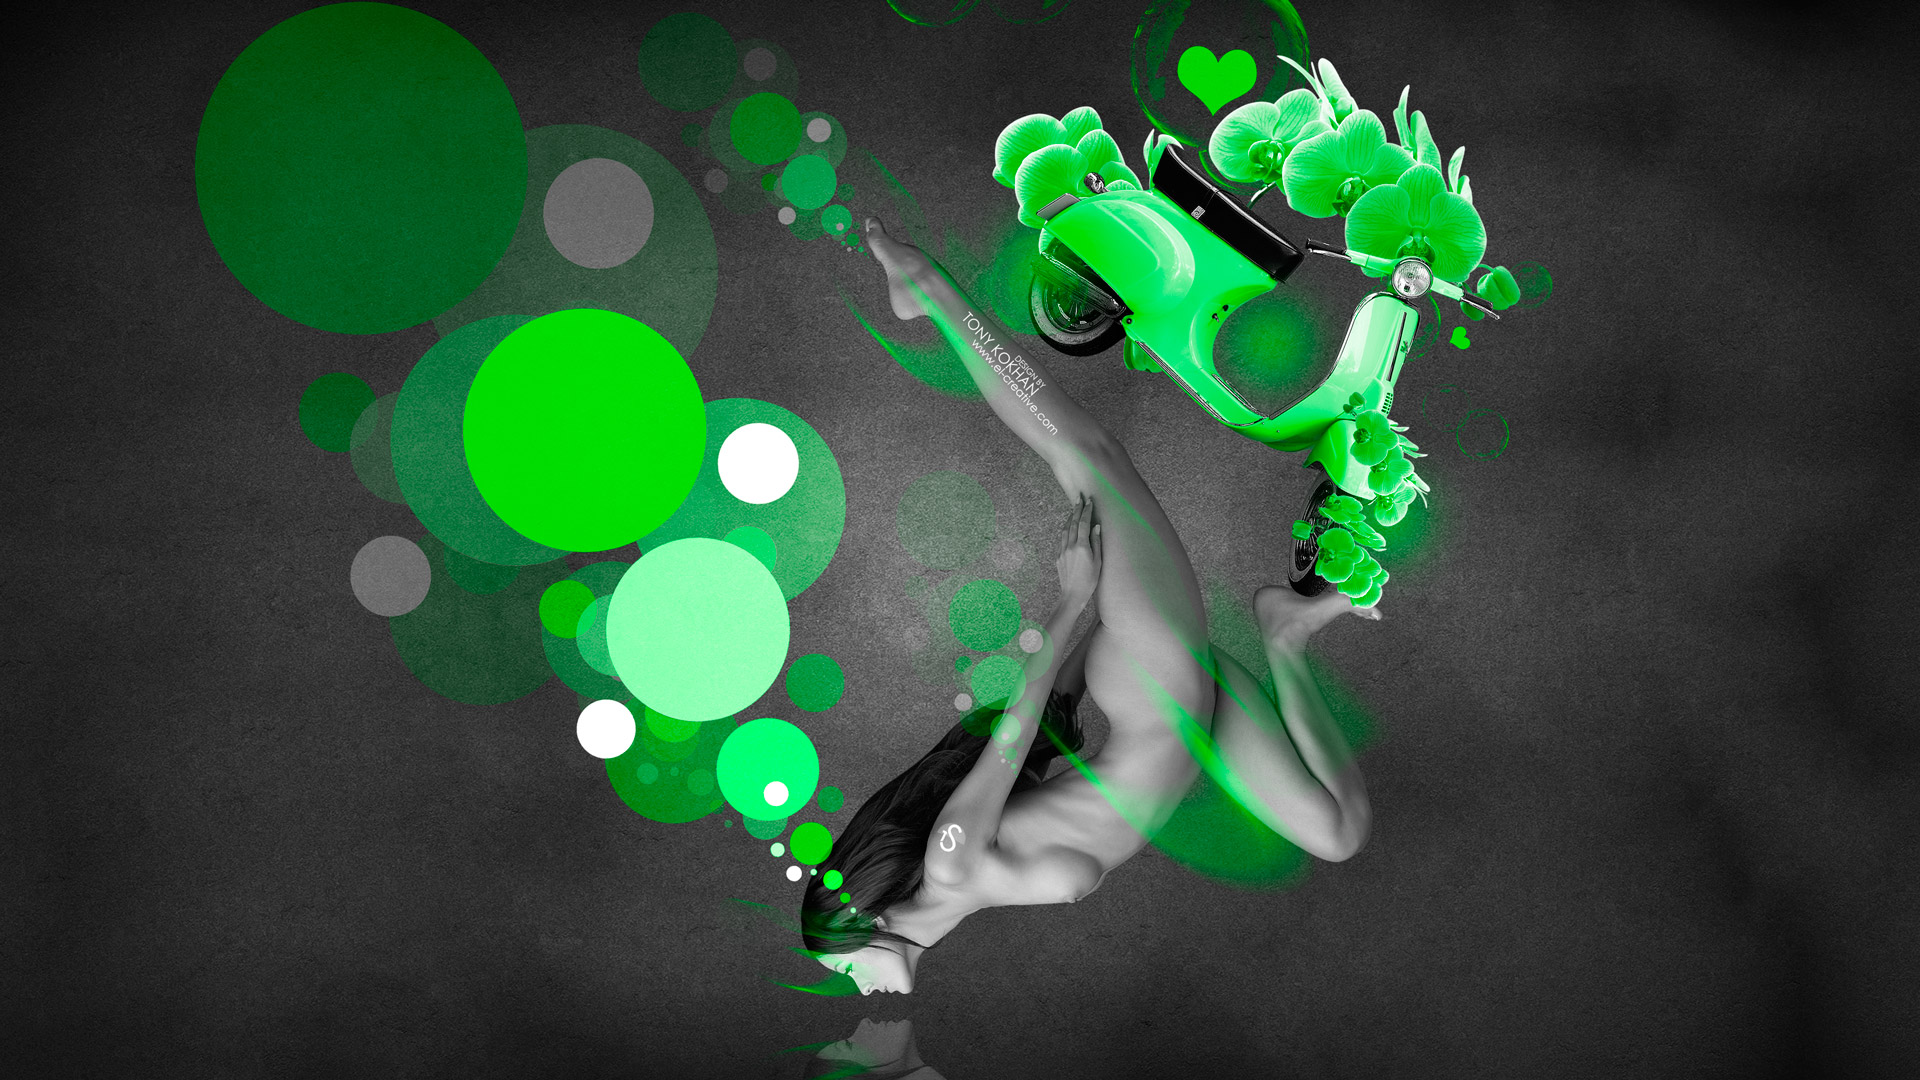 smoke girl 2014 green neon hd wallpapers design by tony Car Pictures 1920x1080